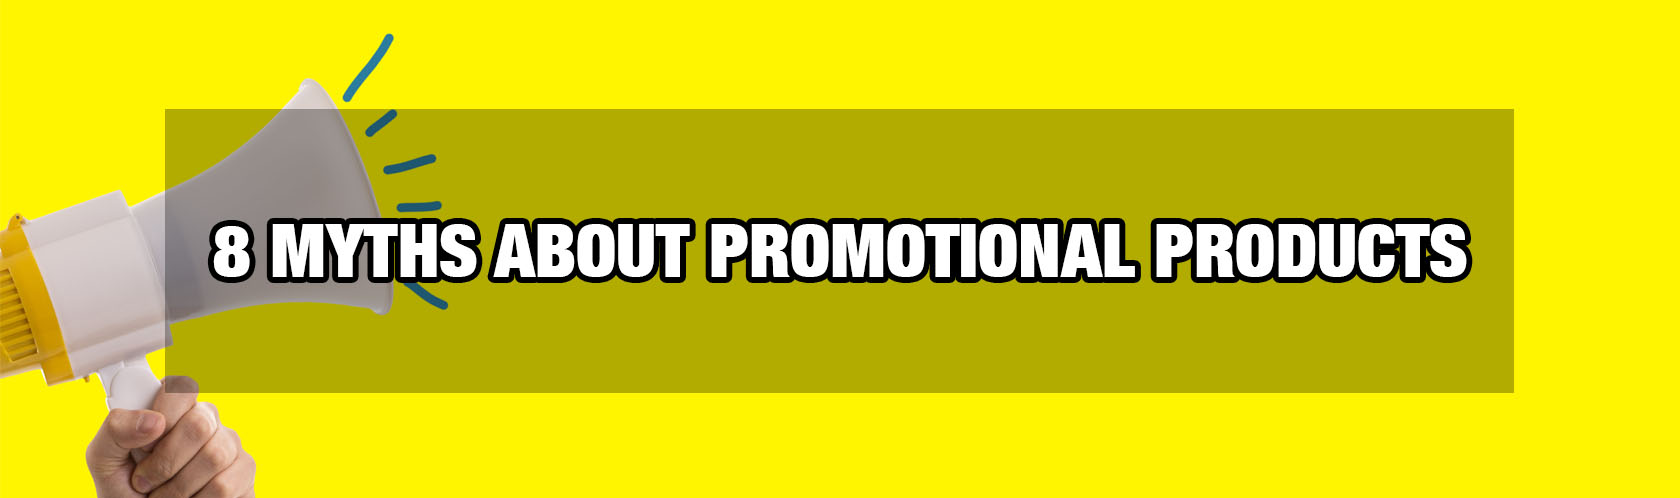 8 Myths About Promotional Products